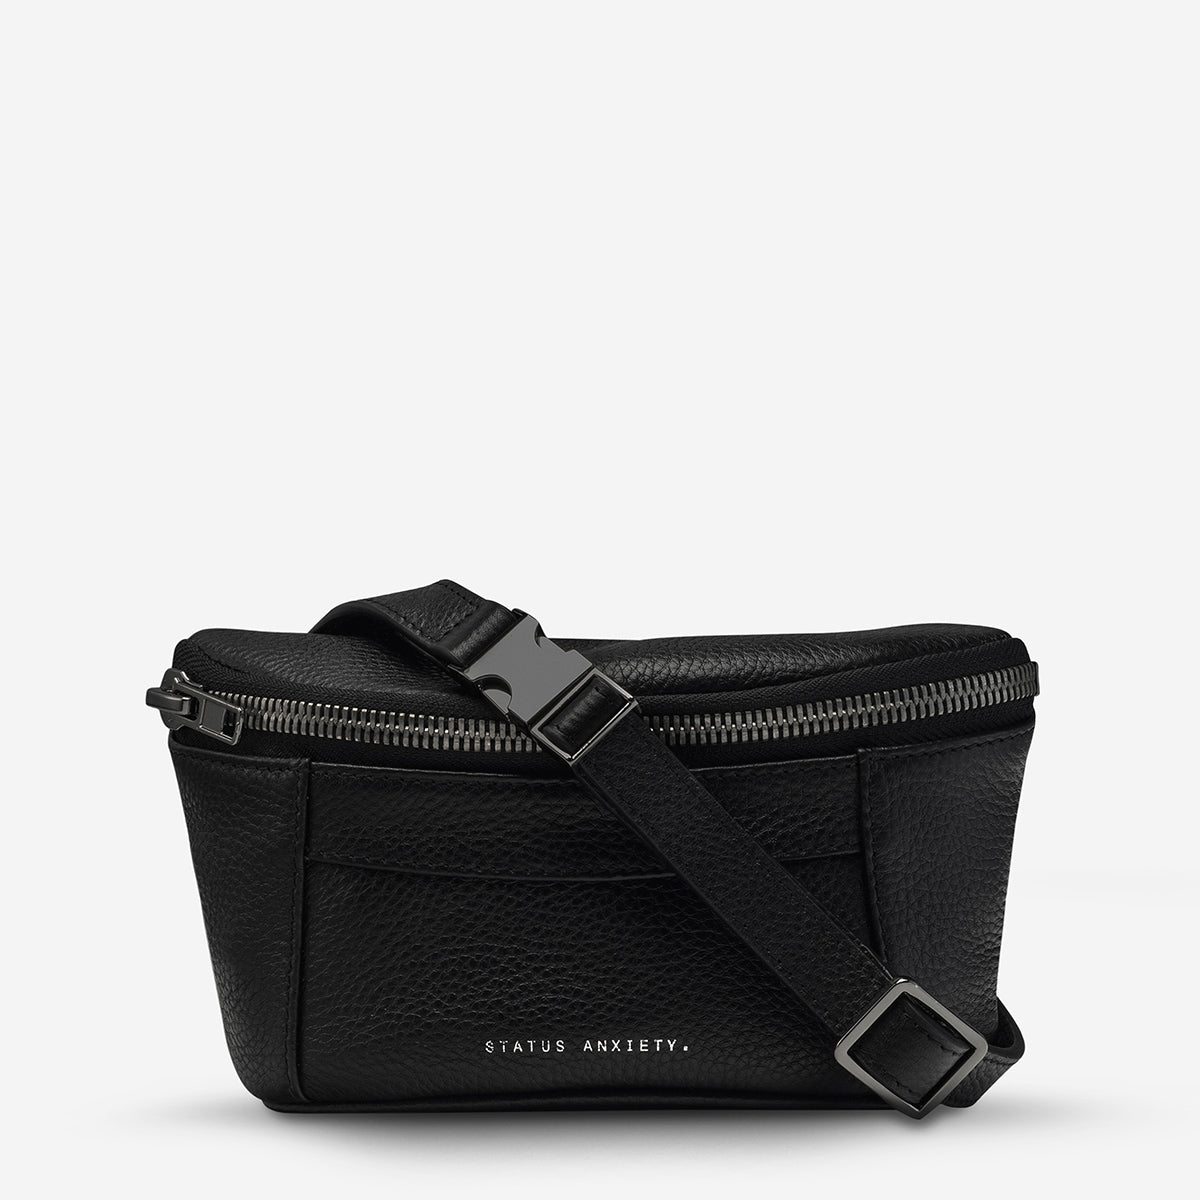 Status Anxiety Best Lies Women's Black Leather Bum Bag